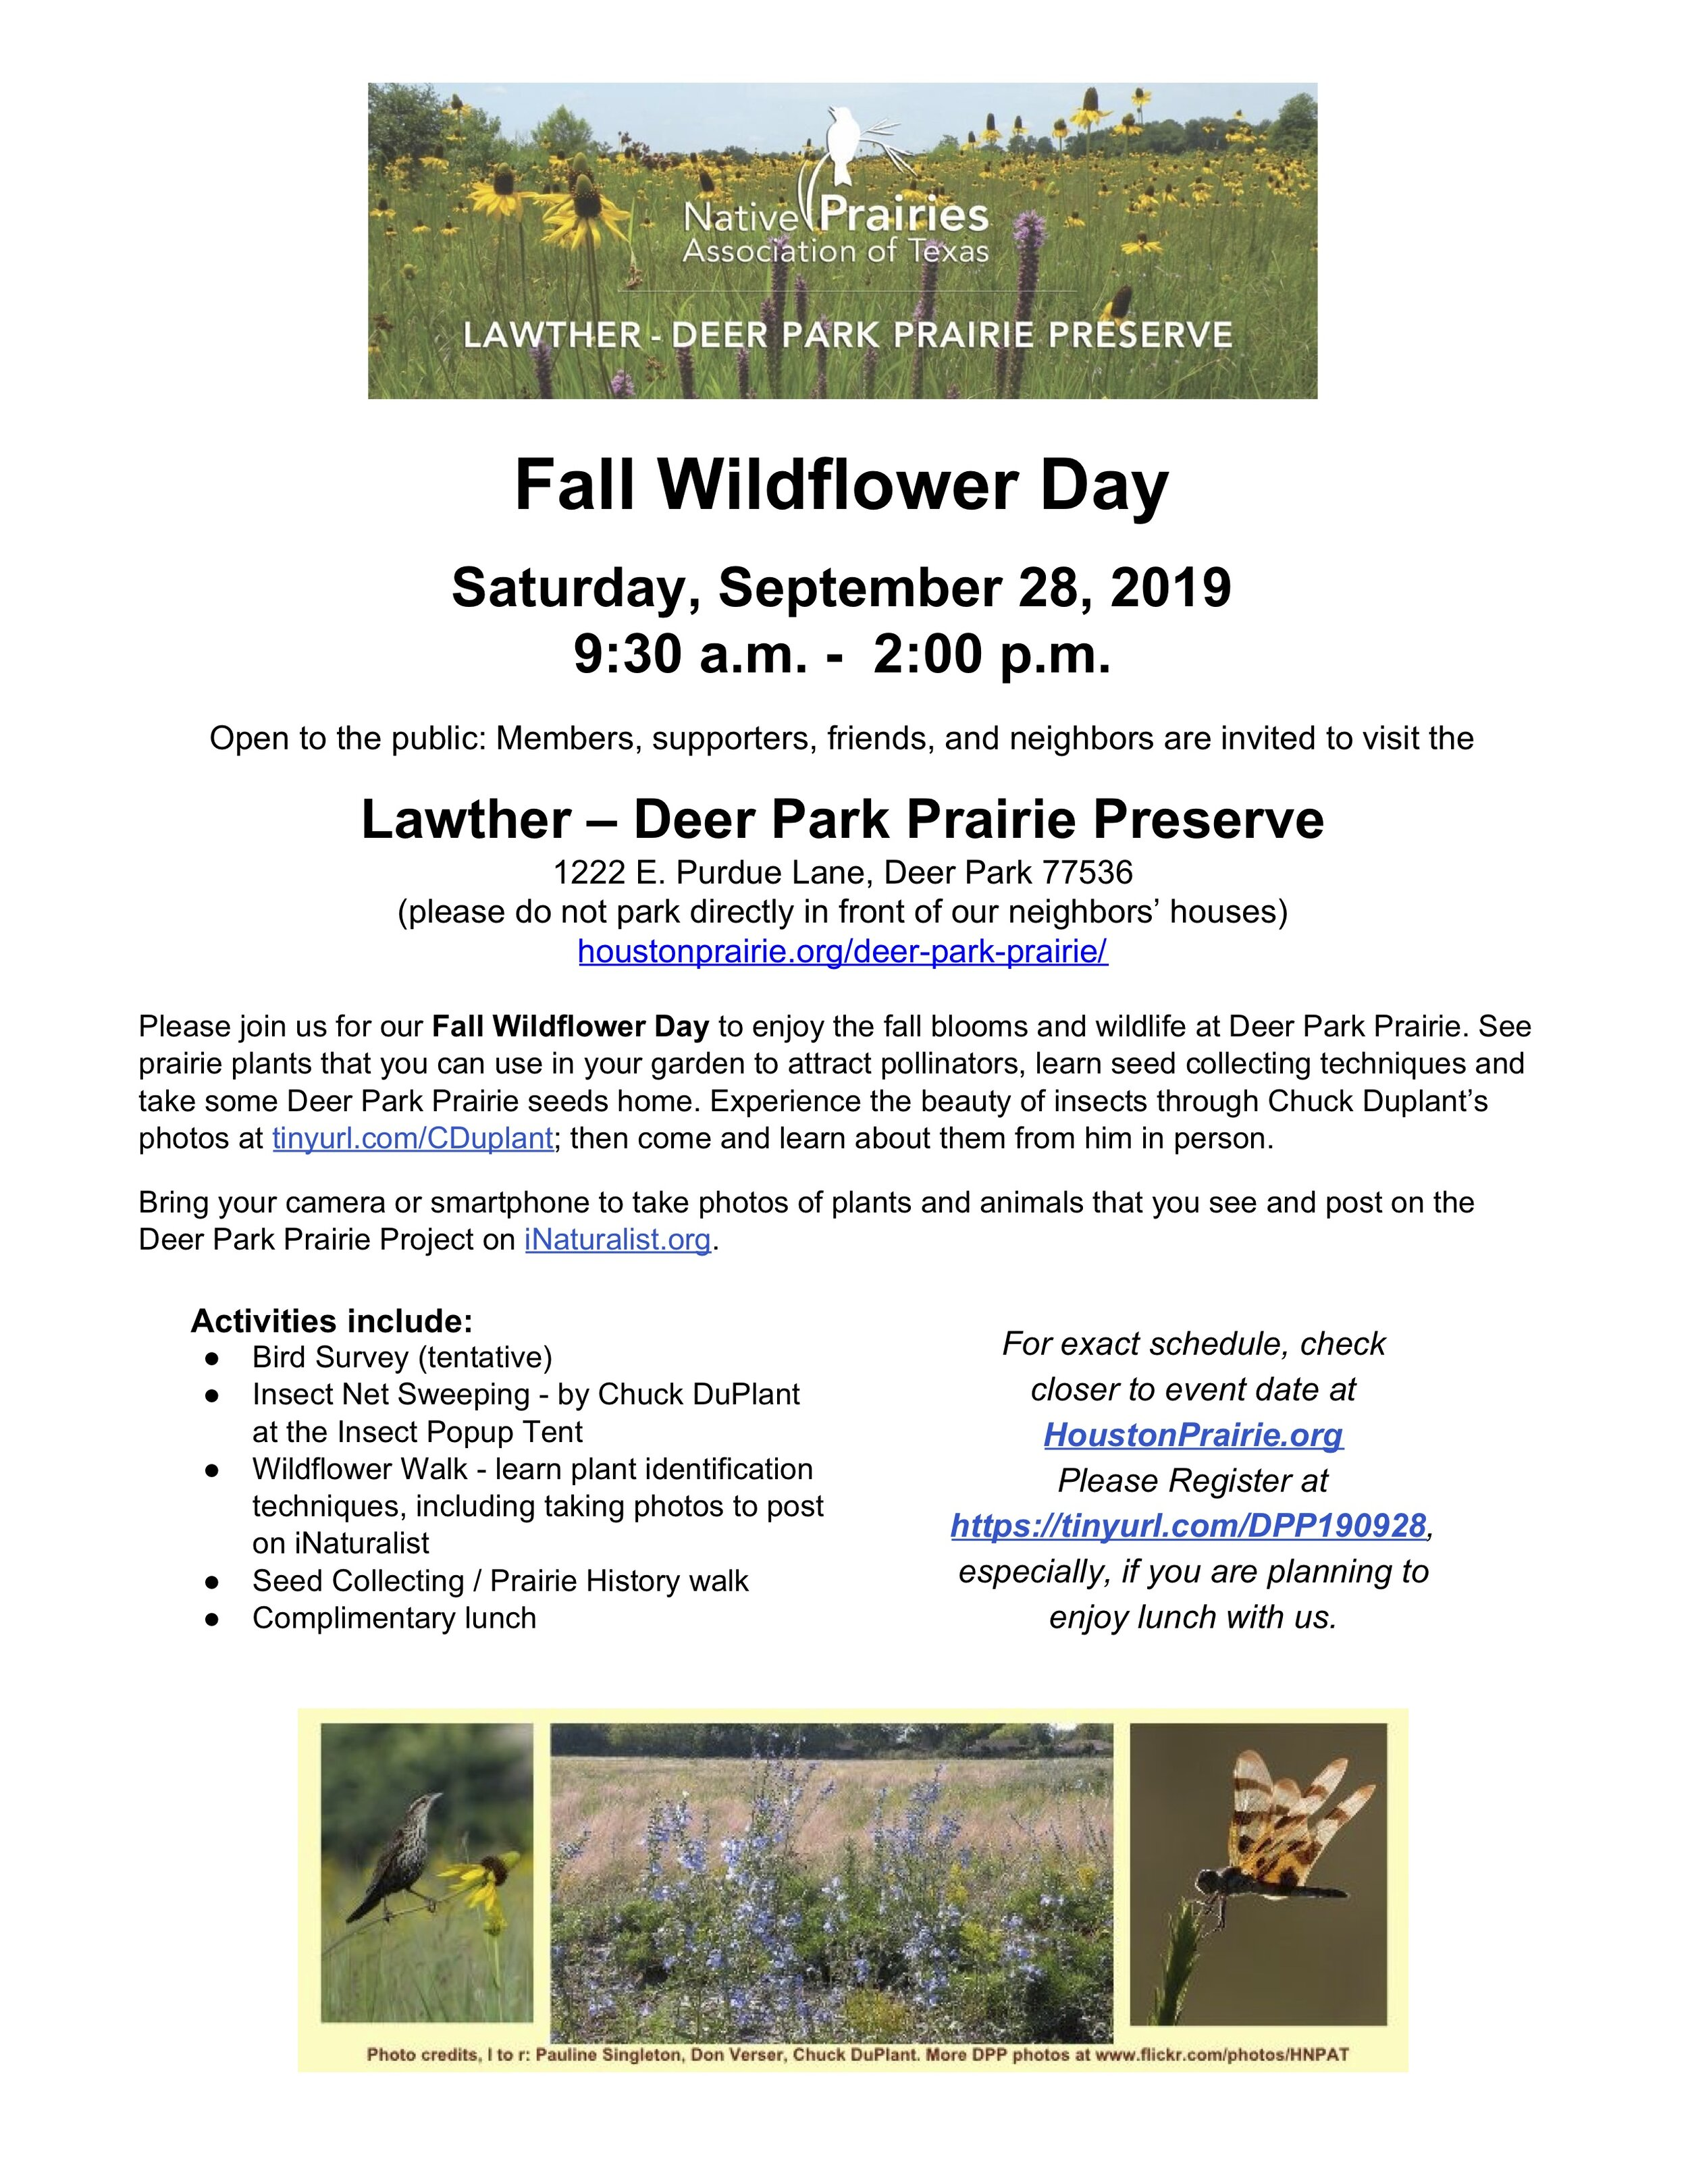 fall-wildflower-day-190928.jpg